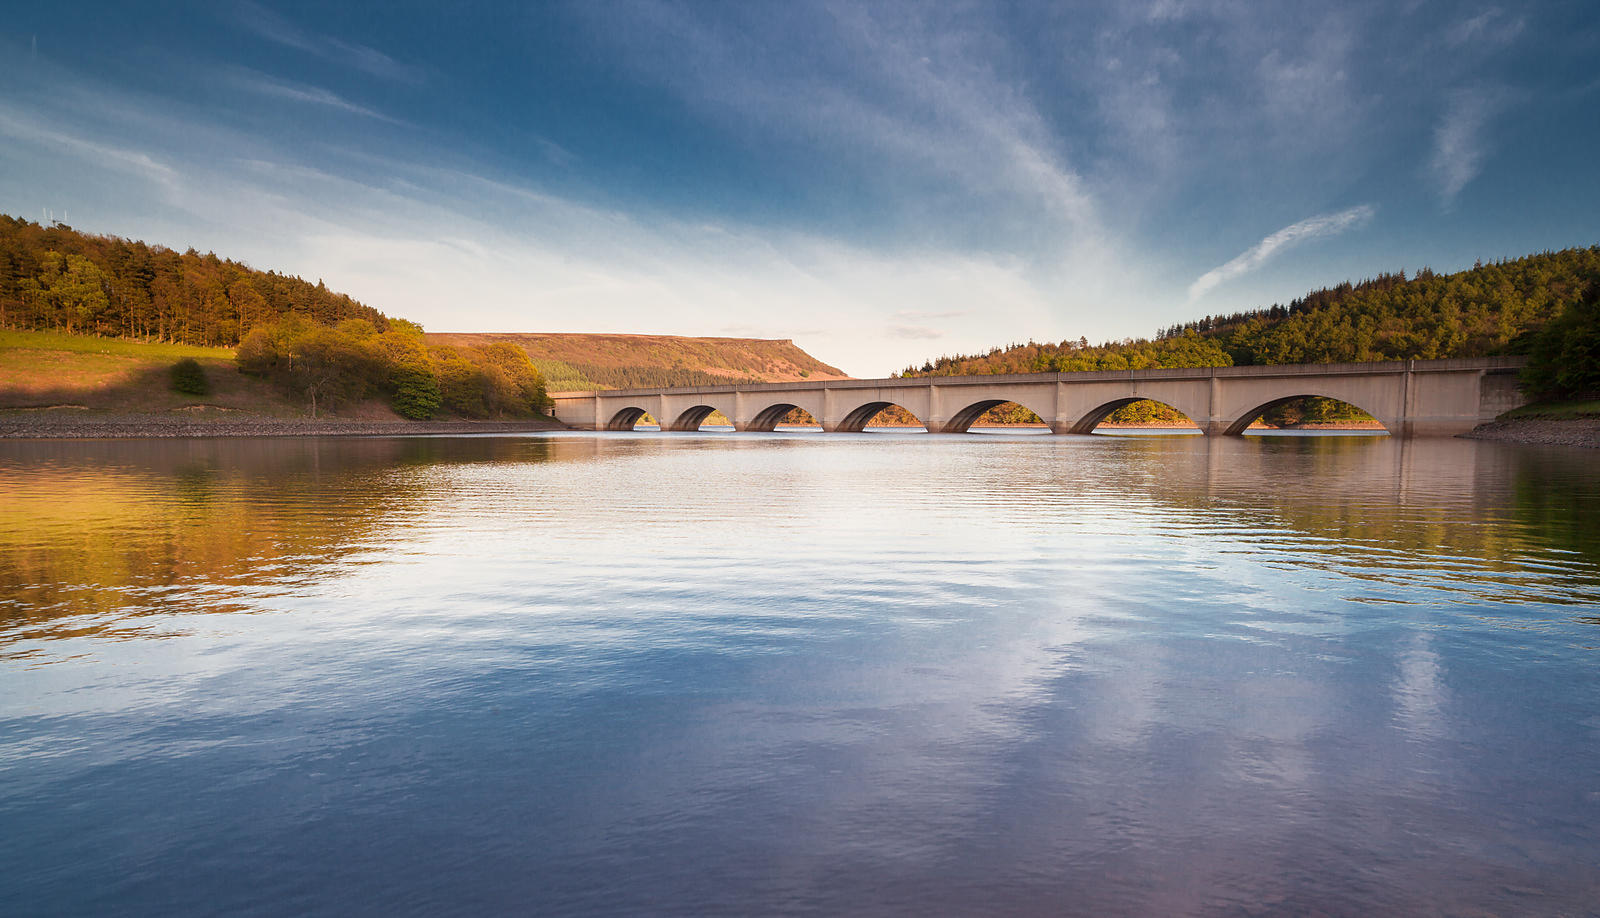 Late afternoon reflections at Ladybower